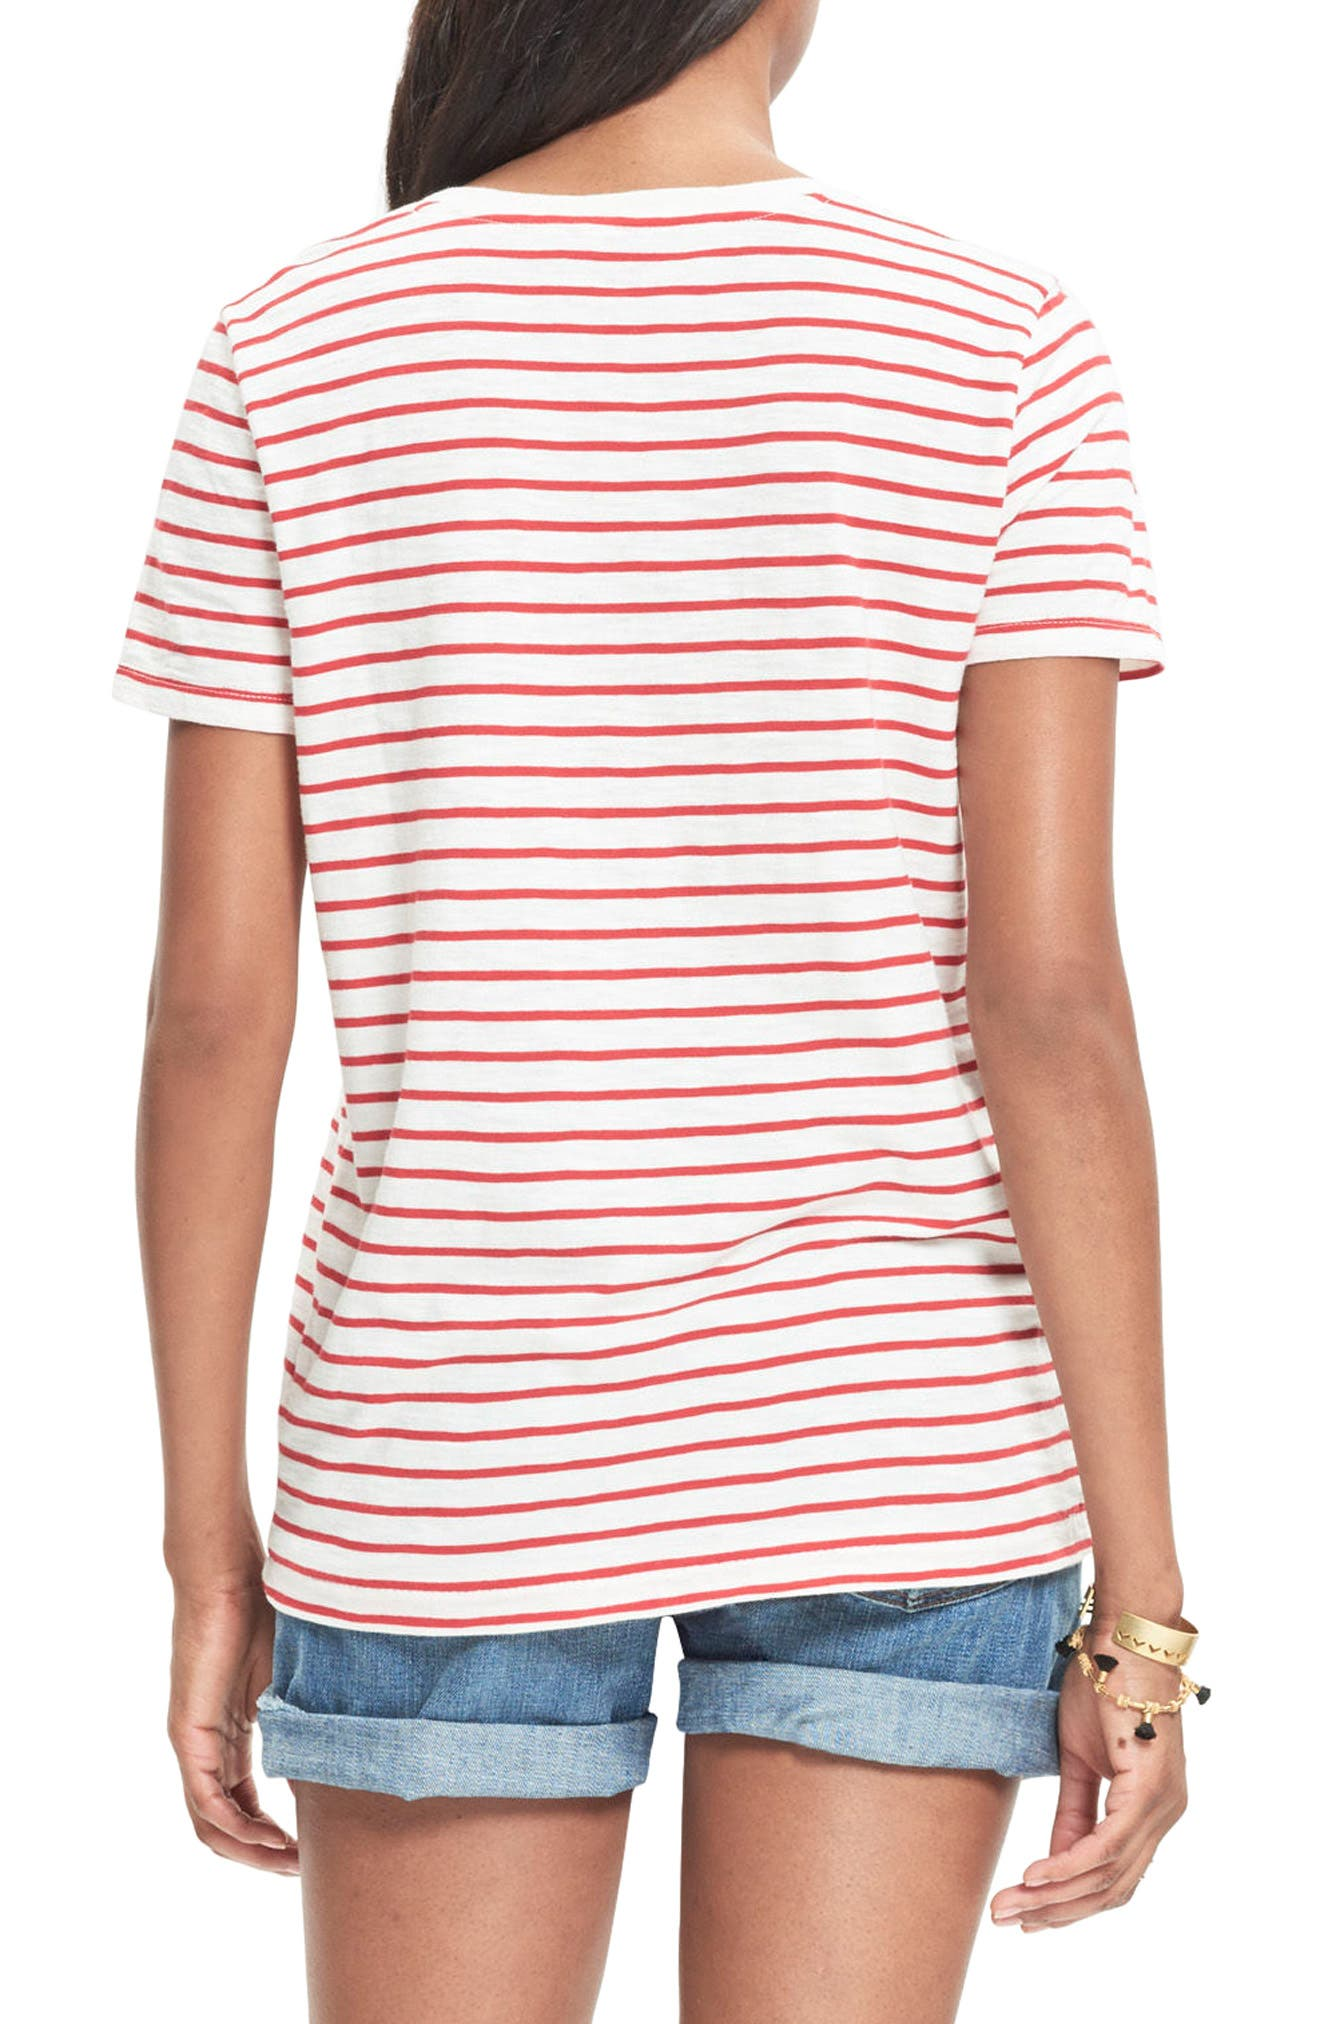 Alternate Image 2  - Madewell Whisper Cotton Stripe V-Neck Tee